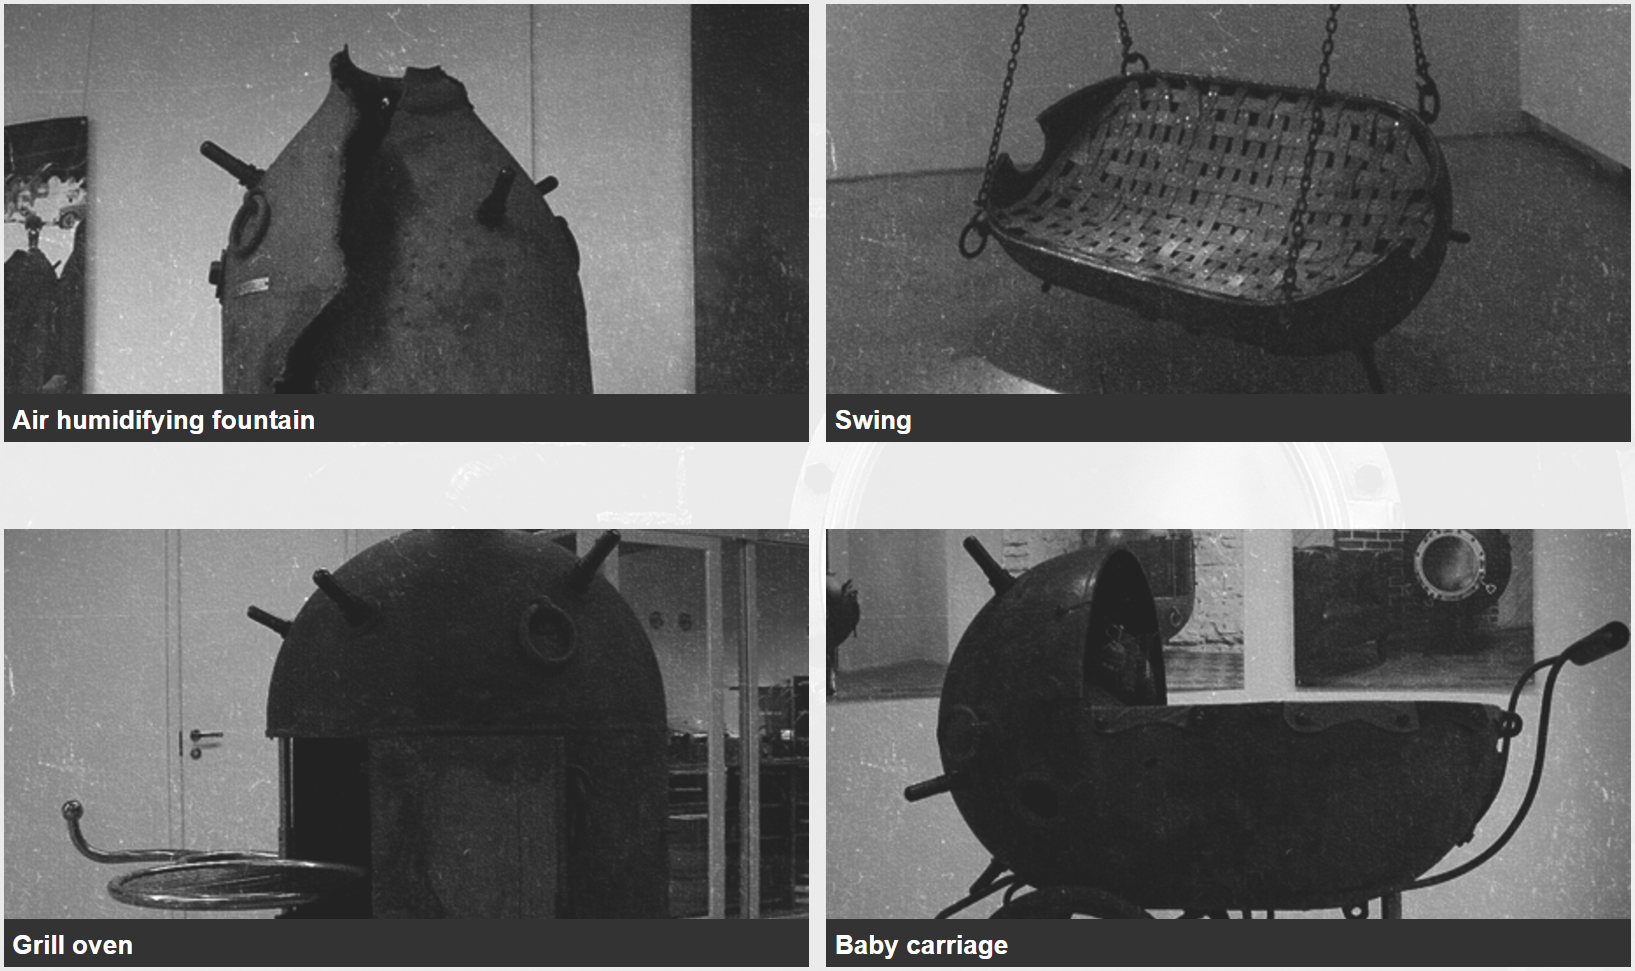 Art U0026 Furniture Made From 1940s 60s Russian AGSB, KB, And UKSM Deep Sea  Mines, By Mati Karmin